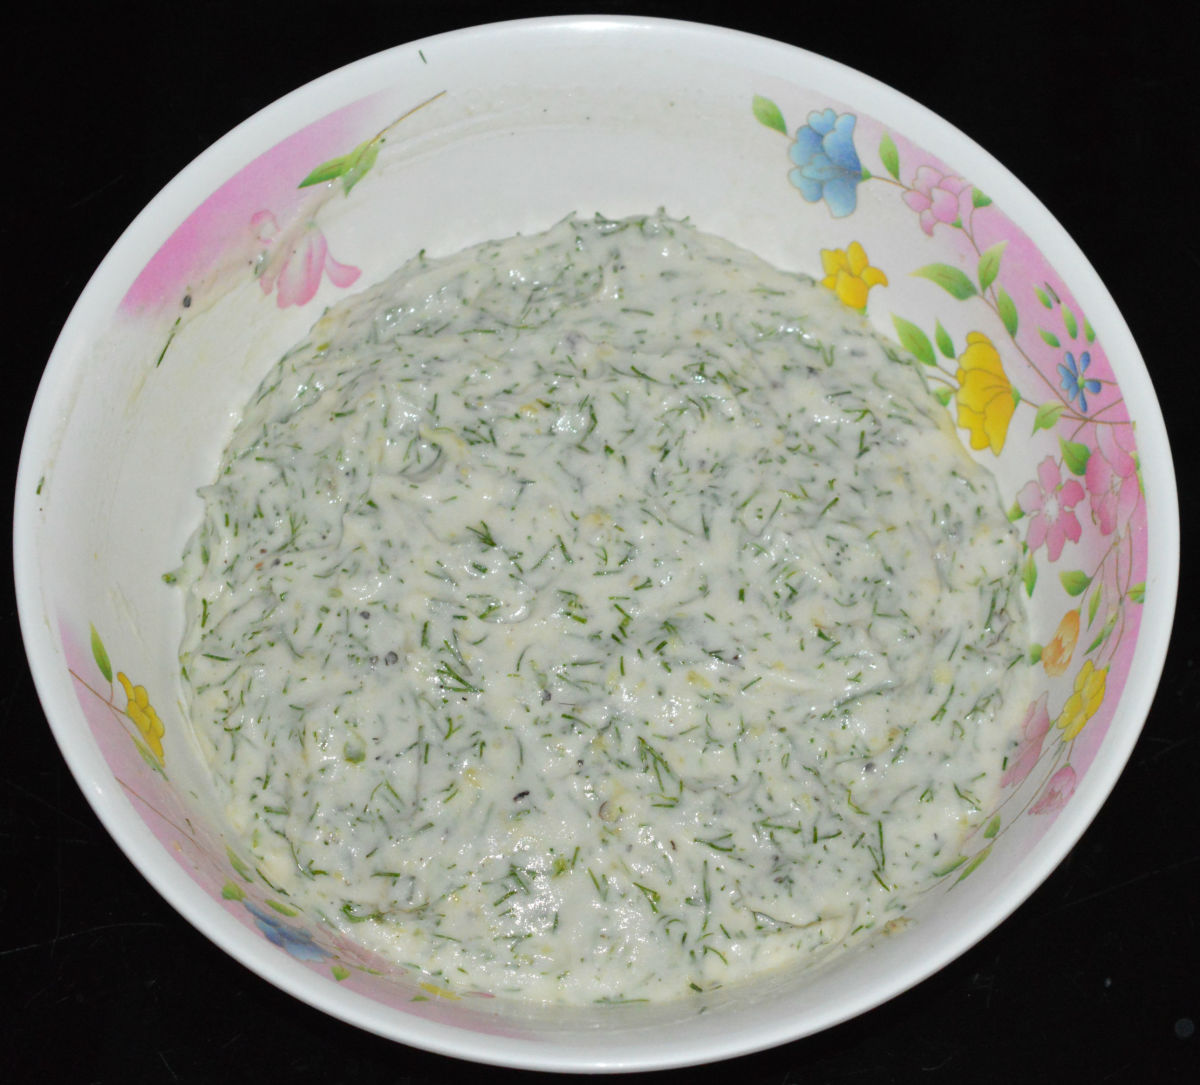 Place the batter in a mixing bowl and allow it to aerate. Add chopped dill leaves, spice mixture, and salt. Mix well.